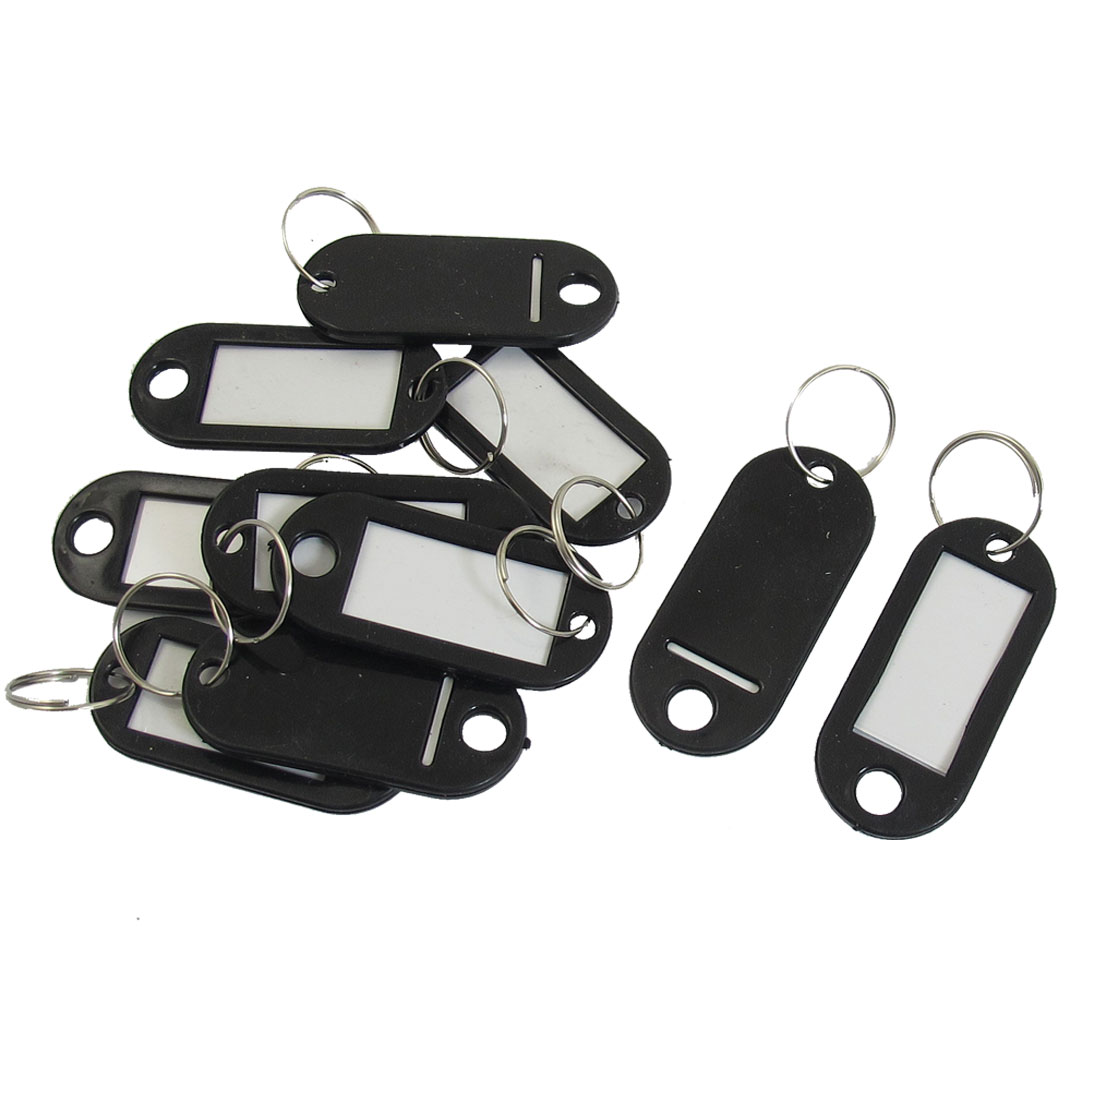 Plastic ID Name Card Labels Split Ring Keyring Keychain Key Tags Black 10pcs